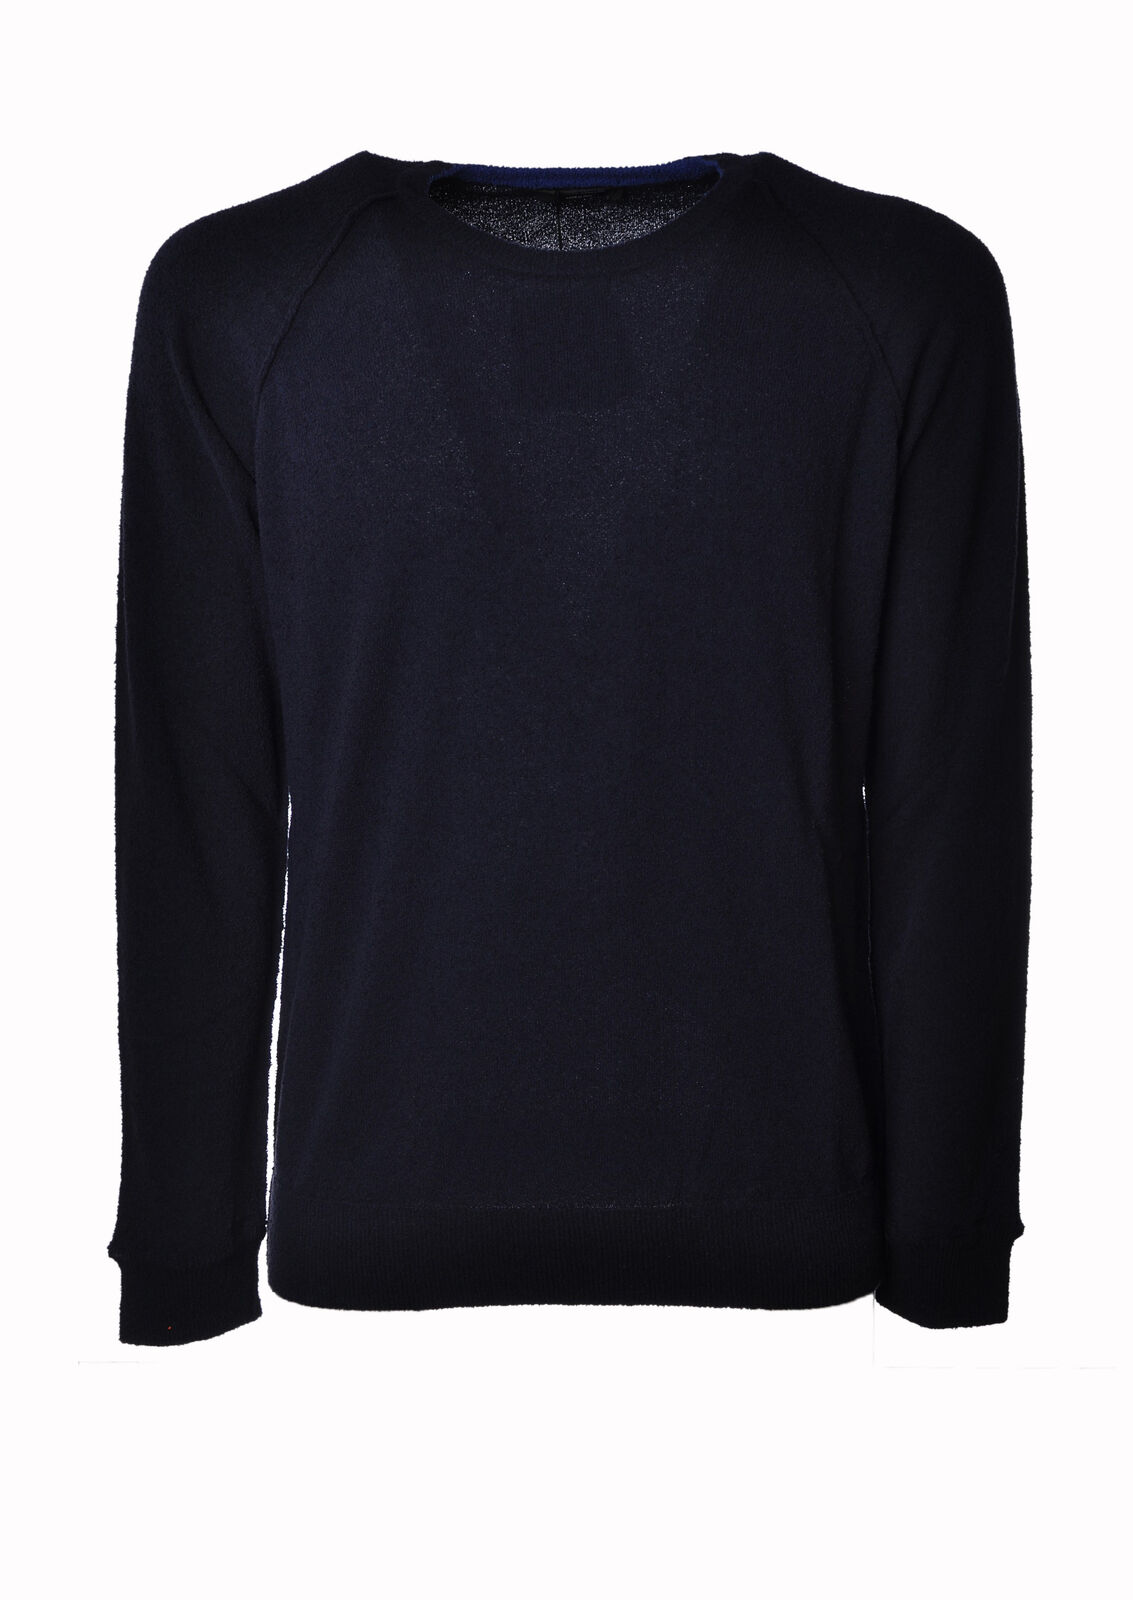 Roberto Collina  -  Sweaters - Male - Blau - 3212115A183753